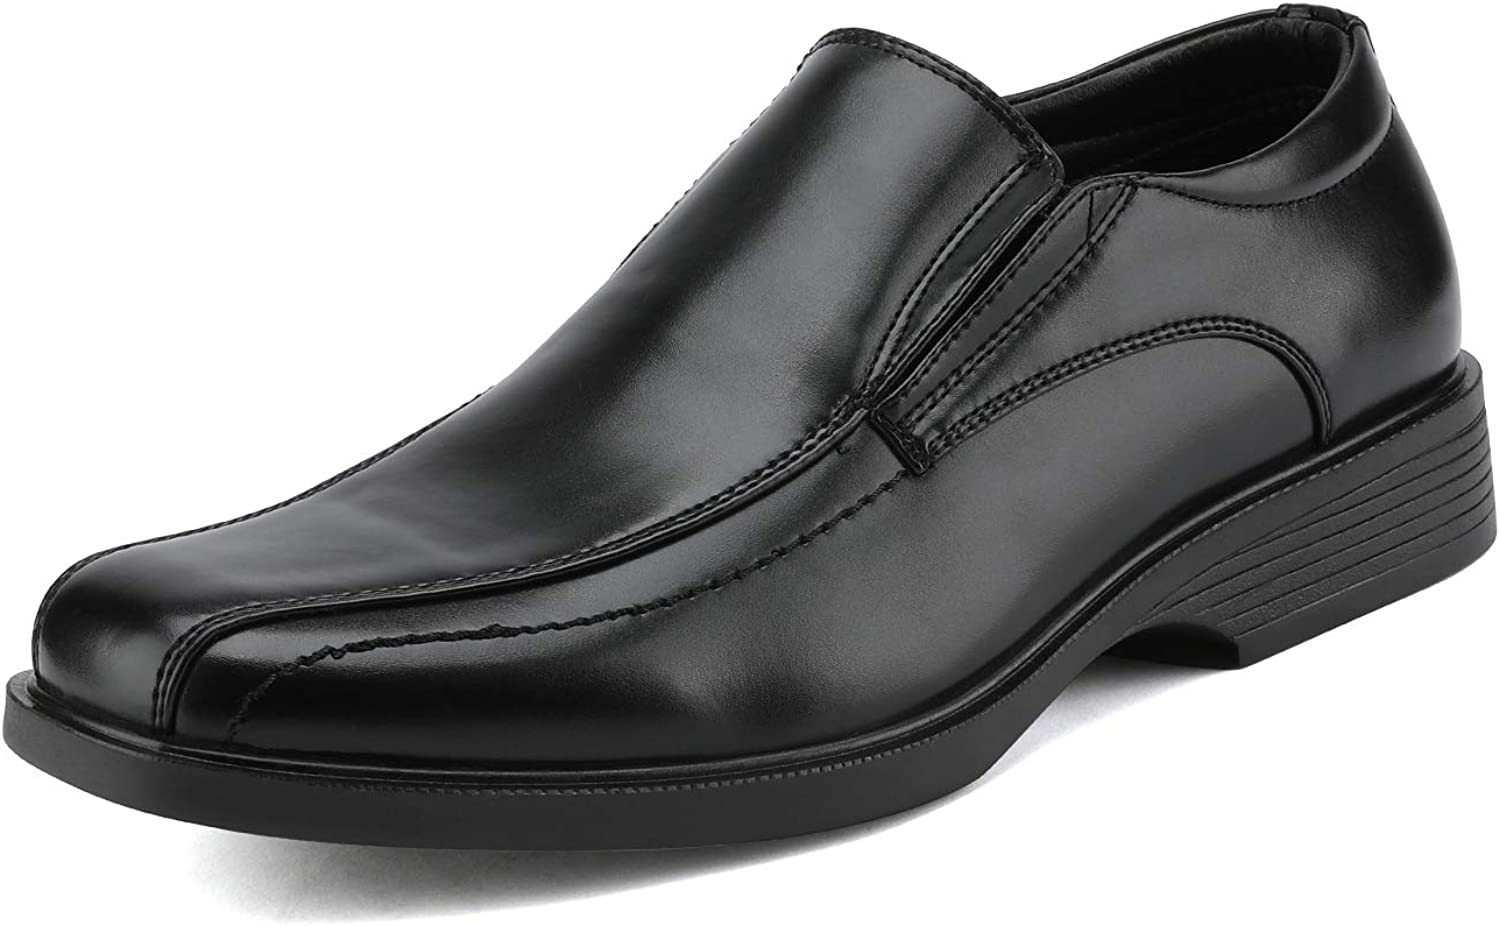 Bruno Marc Men's Formal Leather Lined Dress Loafers Shoes